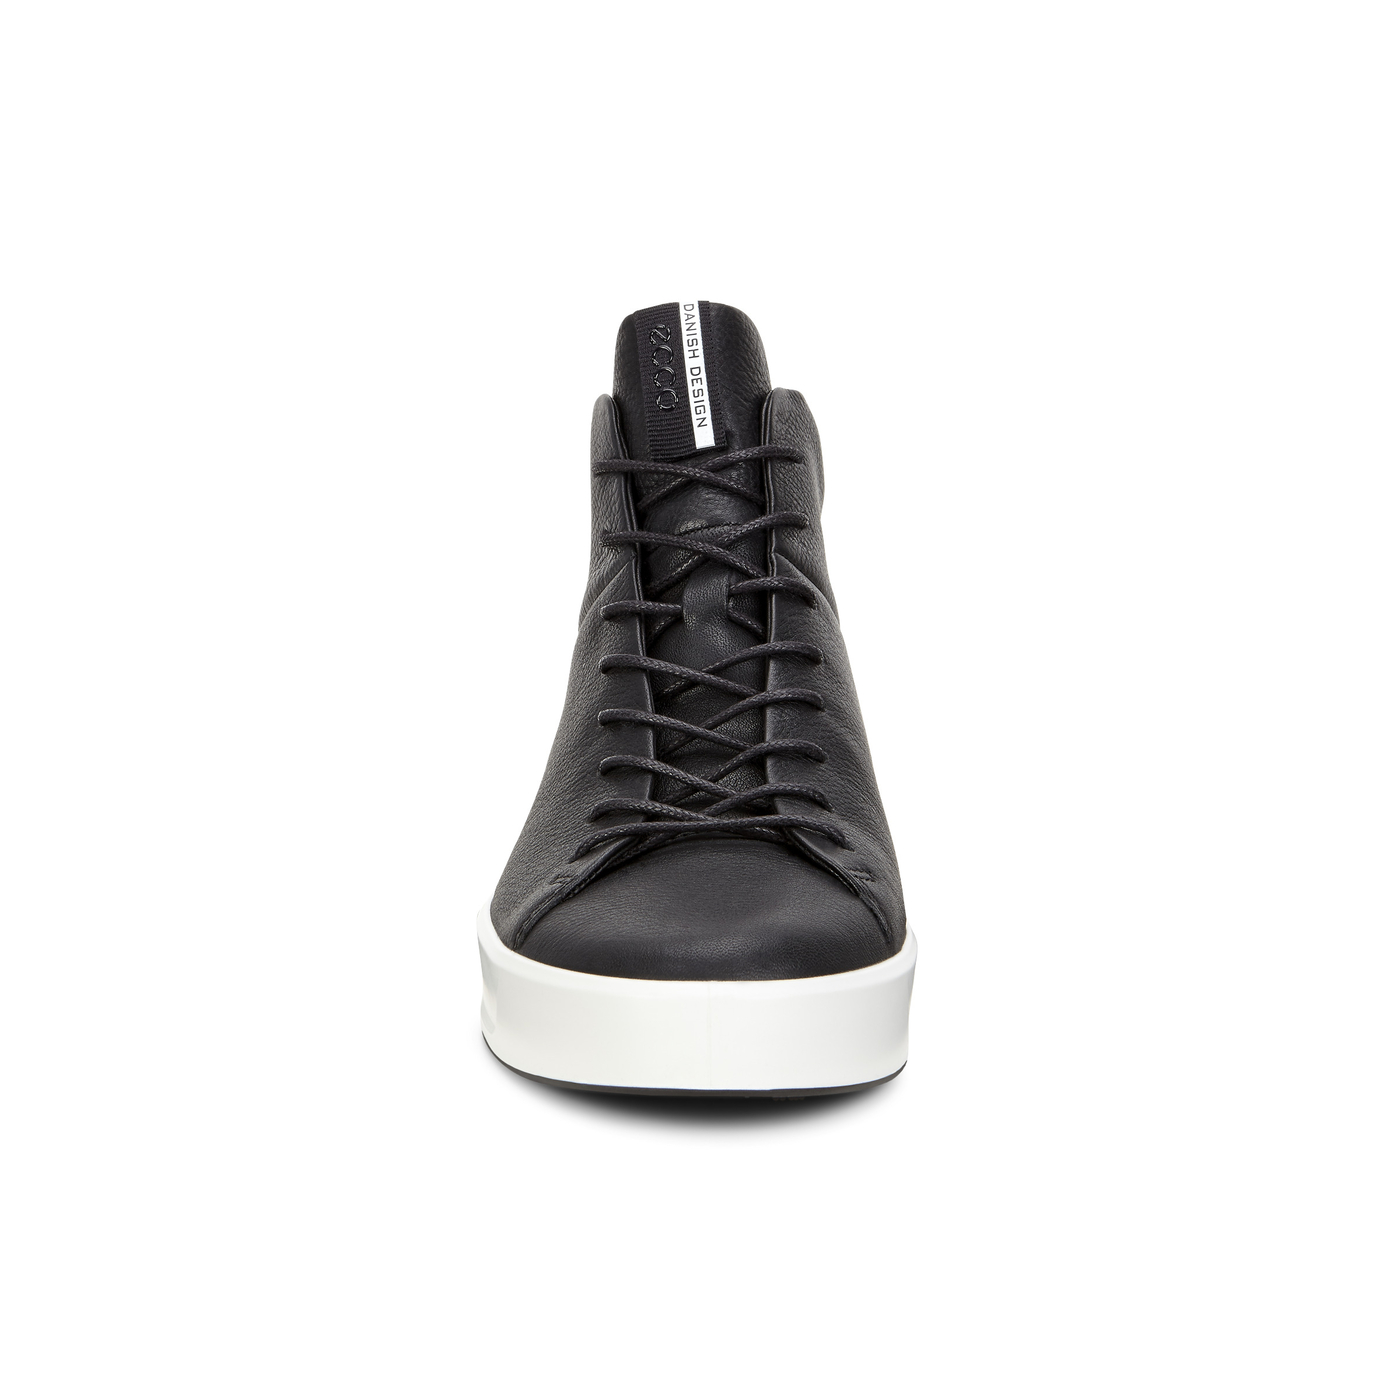 ECCO SOFT8 Mens High Top